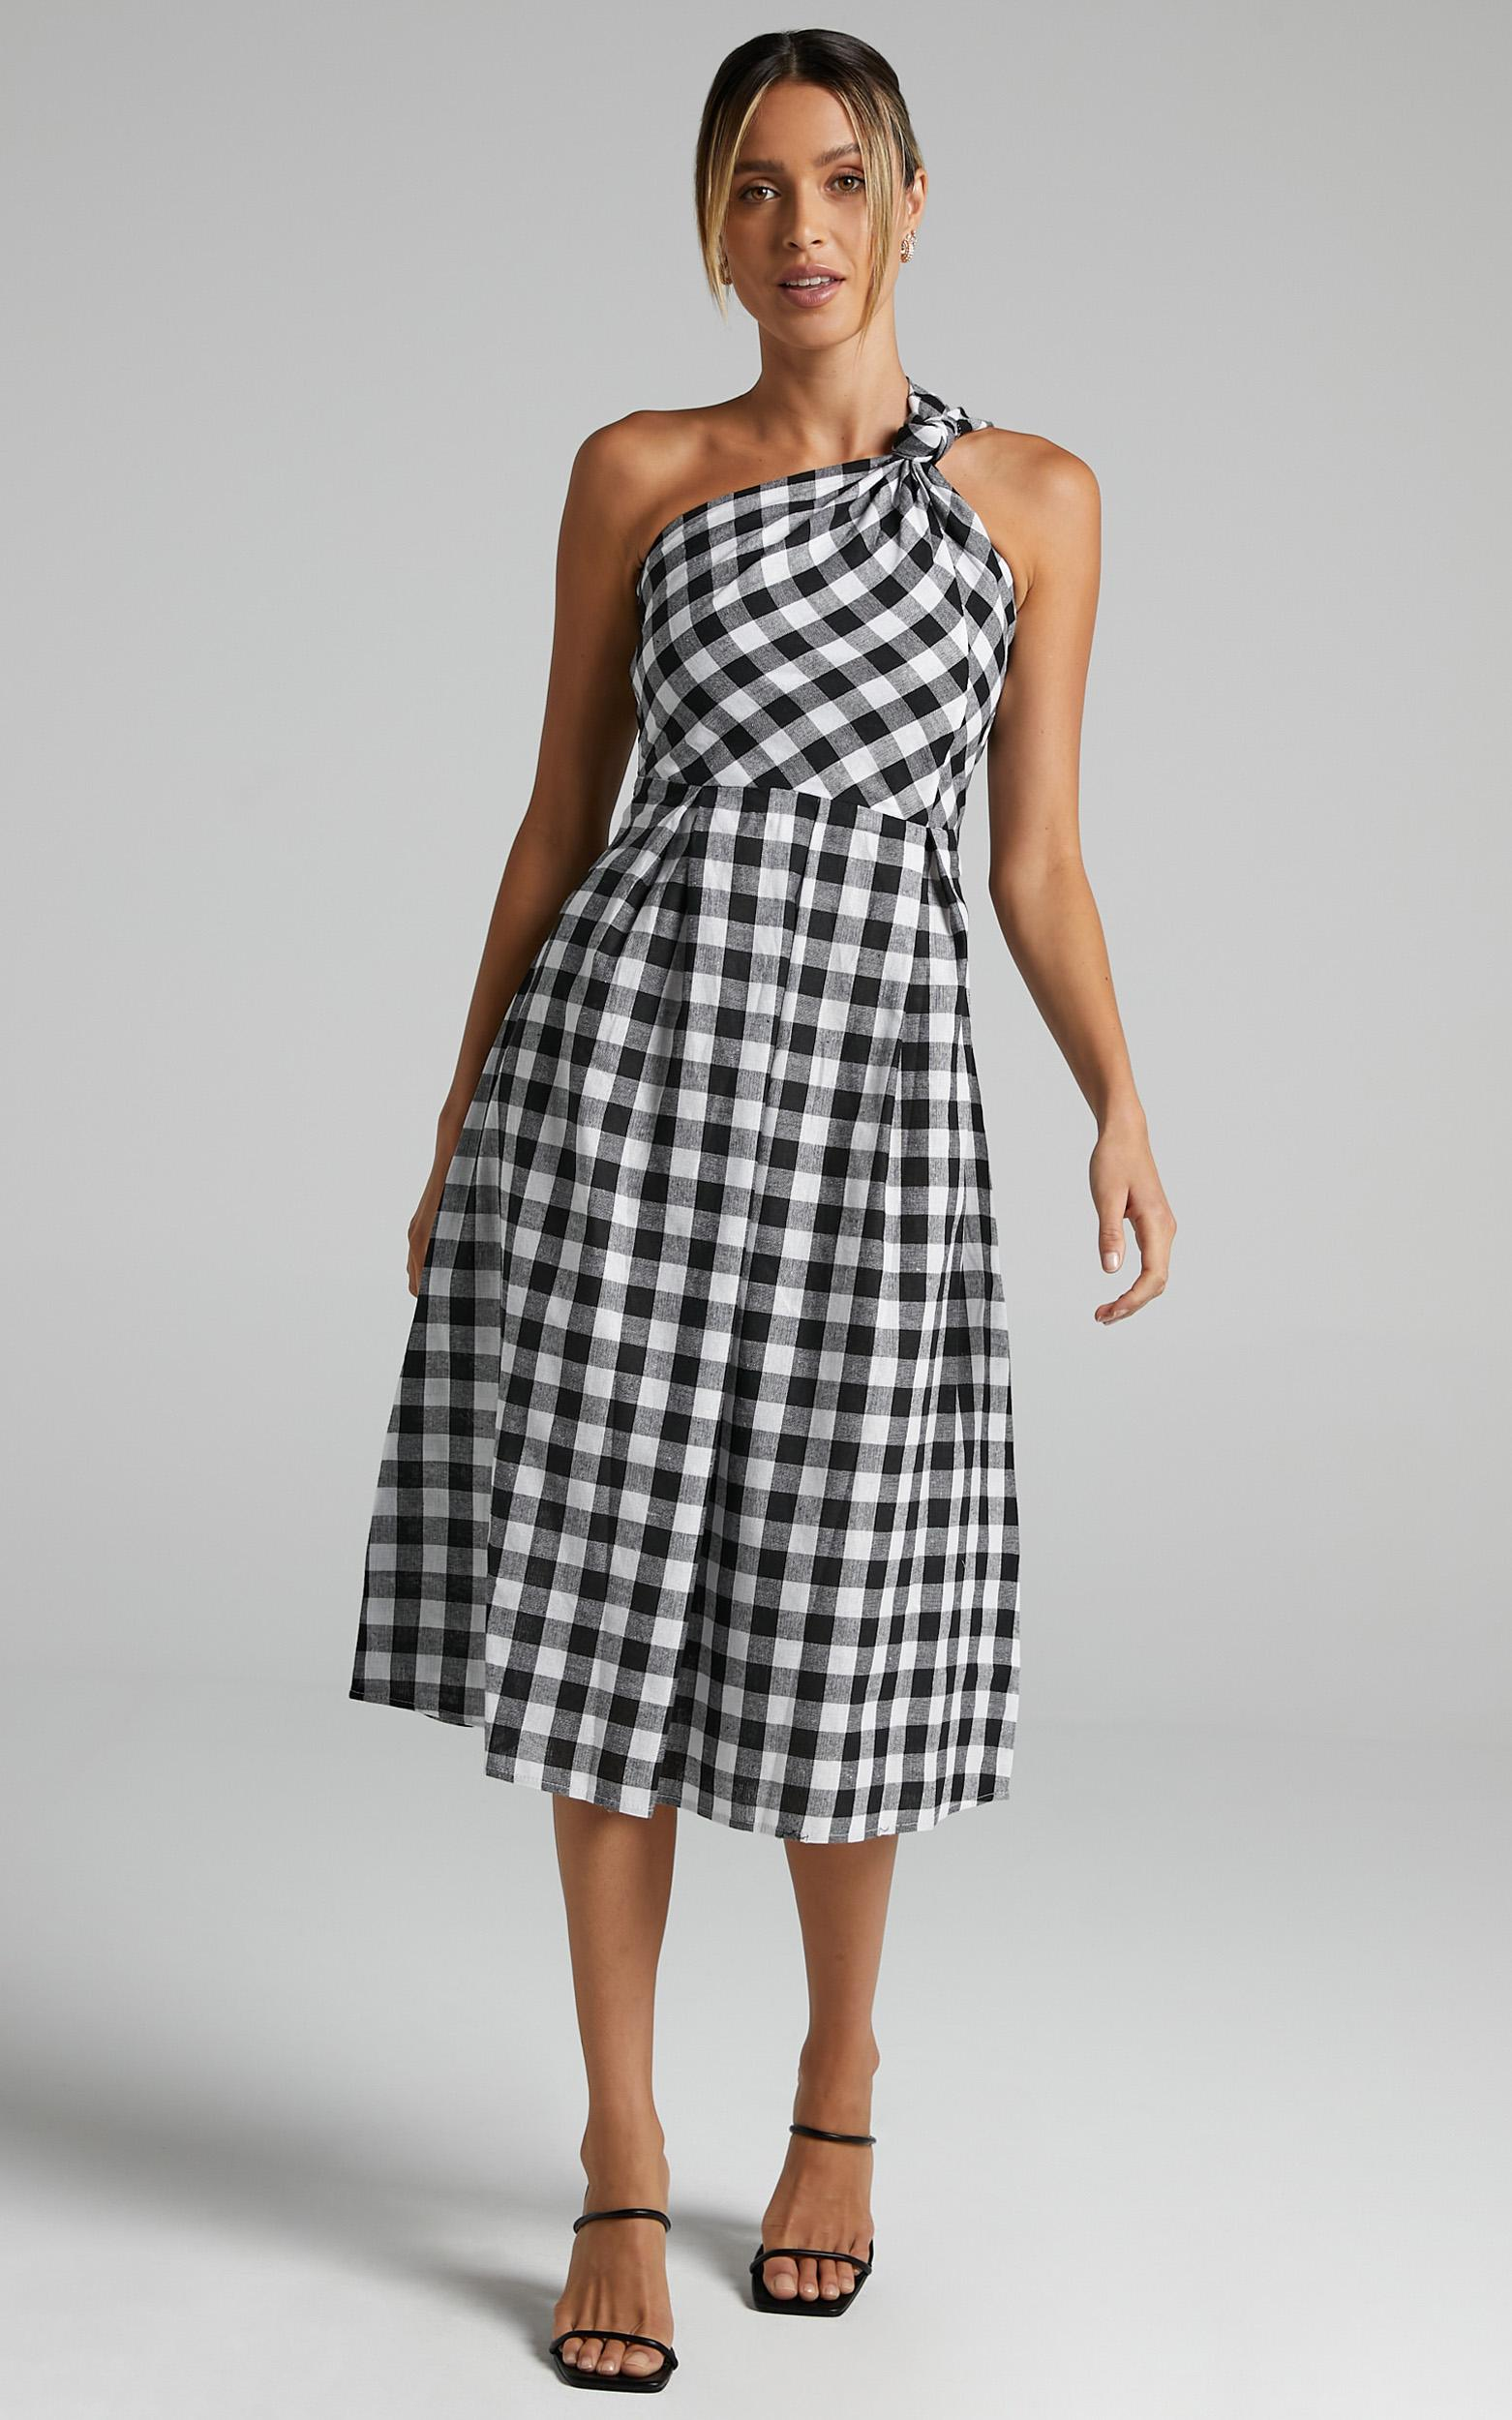 Lakeyn Dress in Black Gingham - 6 (XS), Black, hi-res image number null